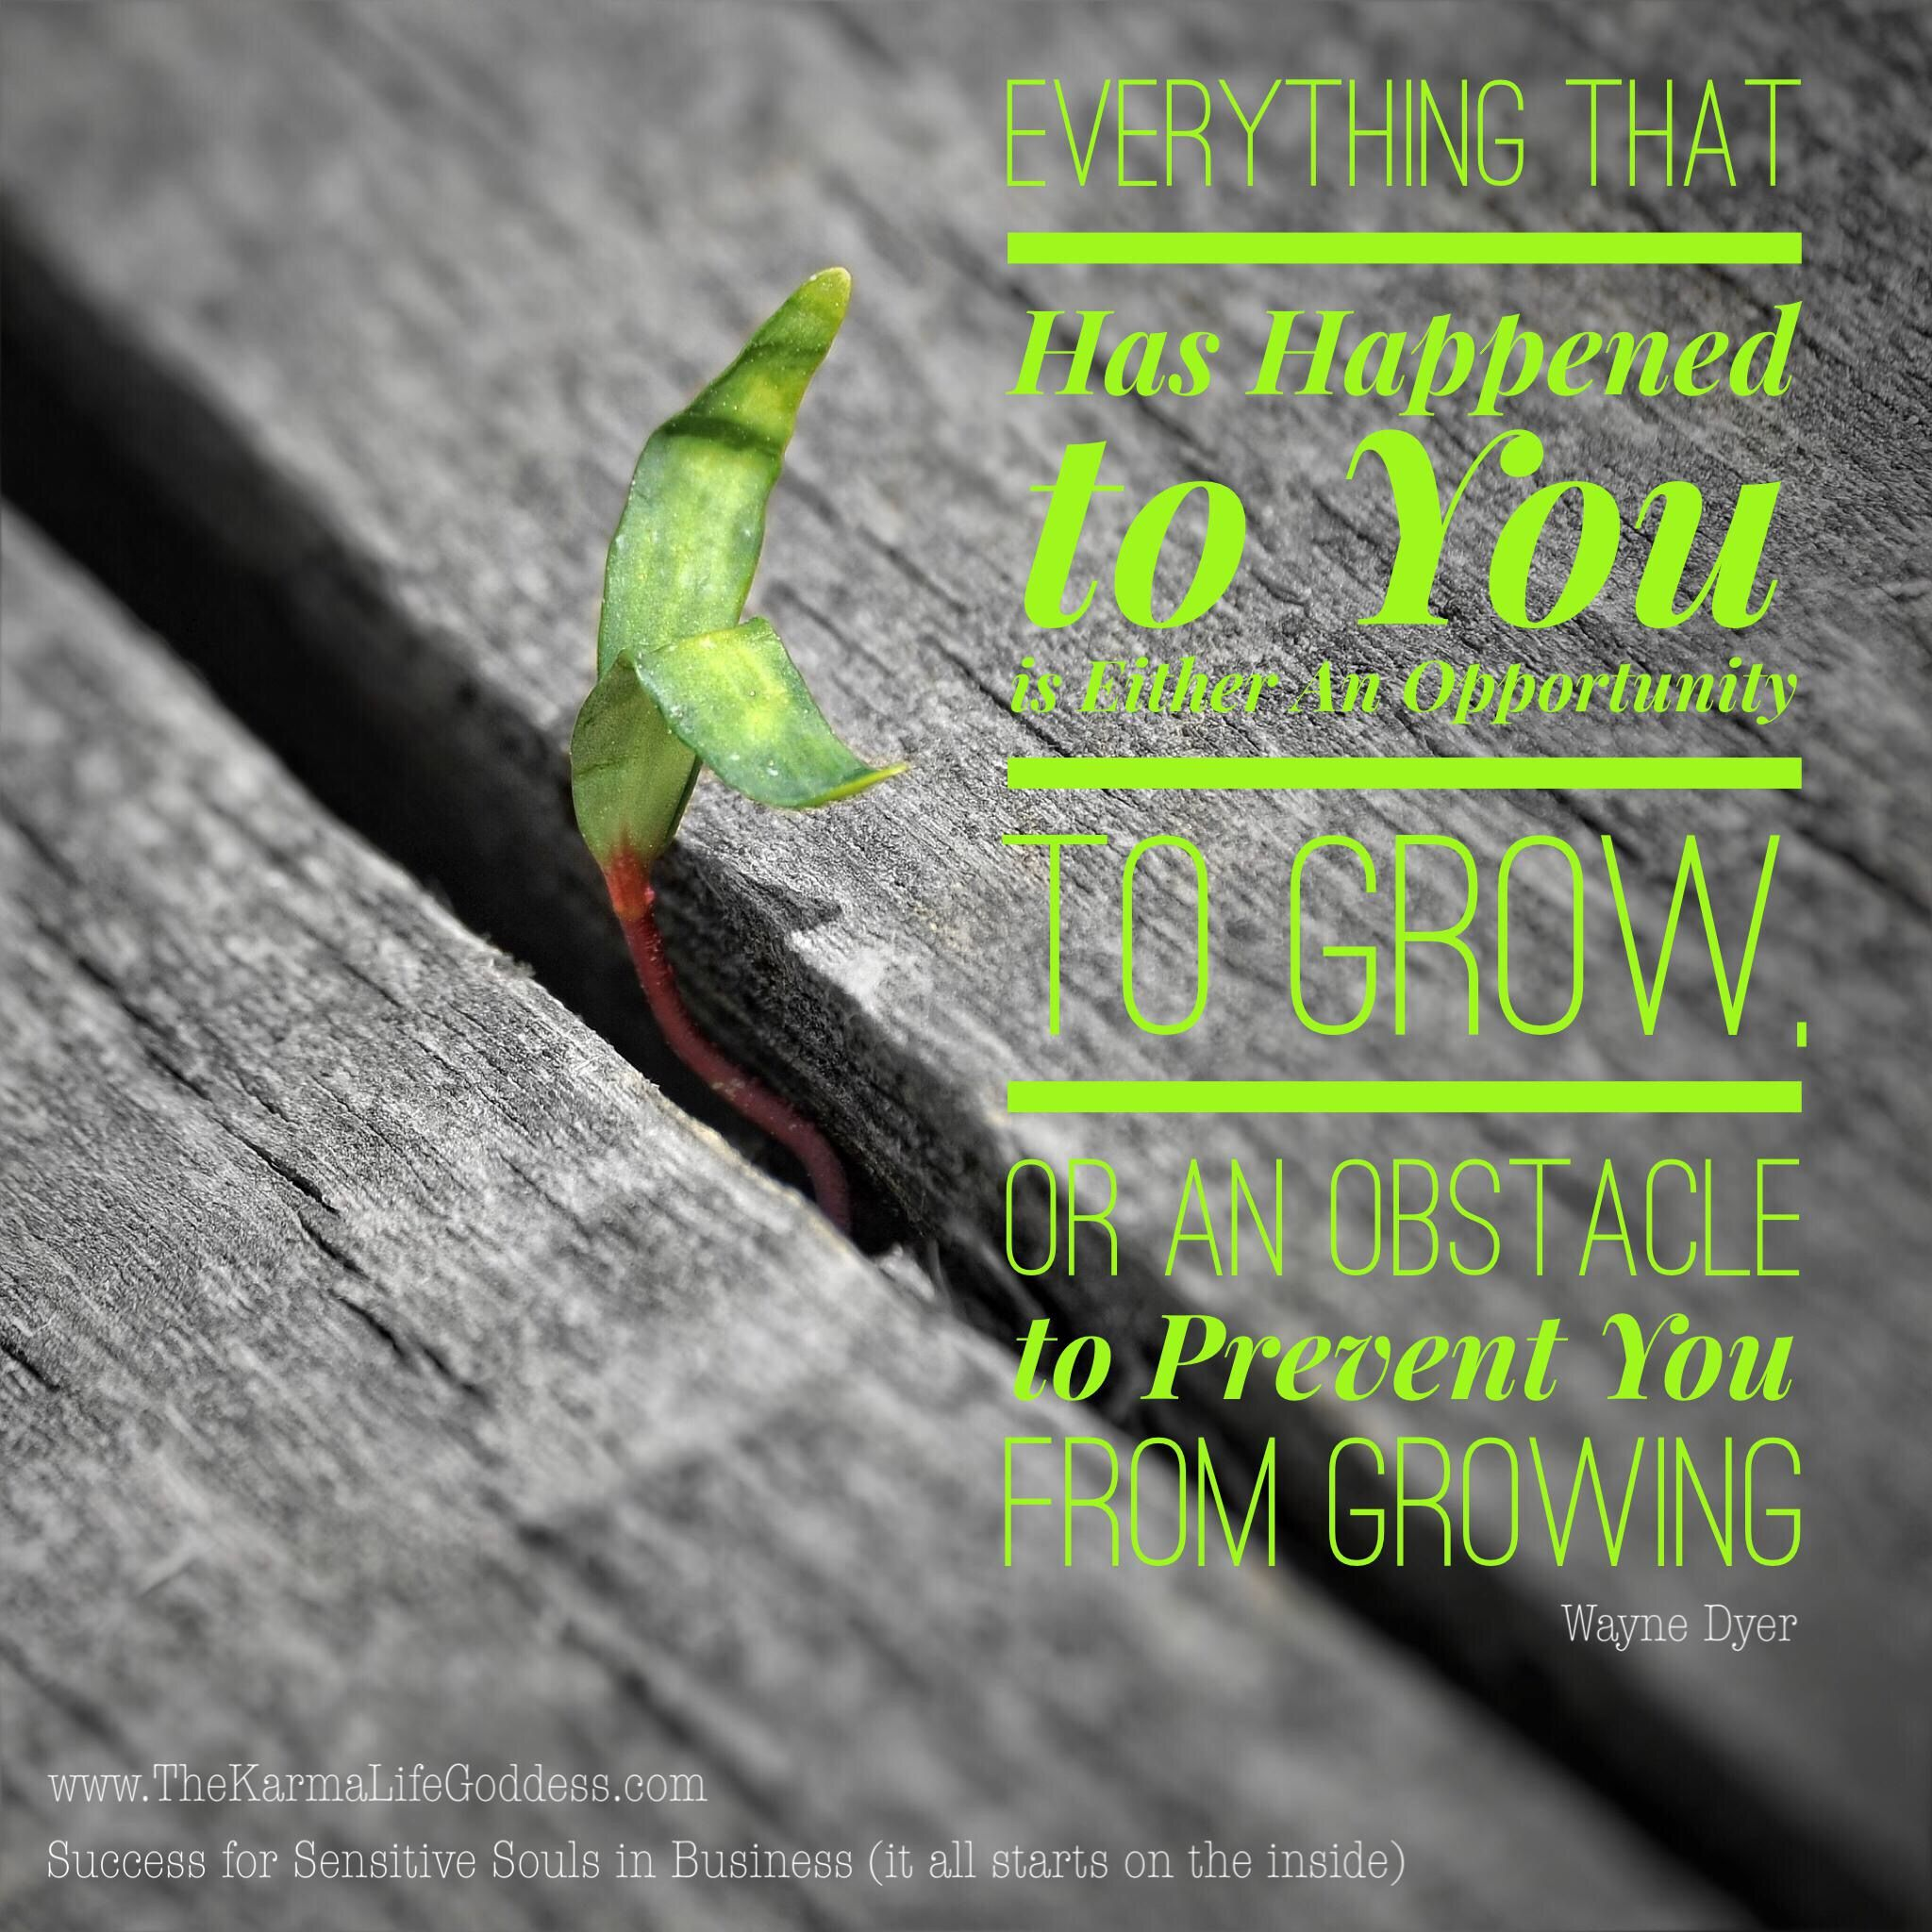 Thought-Changing Thursday: An Obstacle, Or An Opportunity to Grow? read the short article: http://www.thekarmalifegoddess.com/blog/thought-changing-thursday-an-obstacle-or-an-opportunity-to-grow/